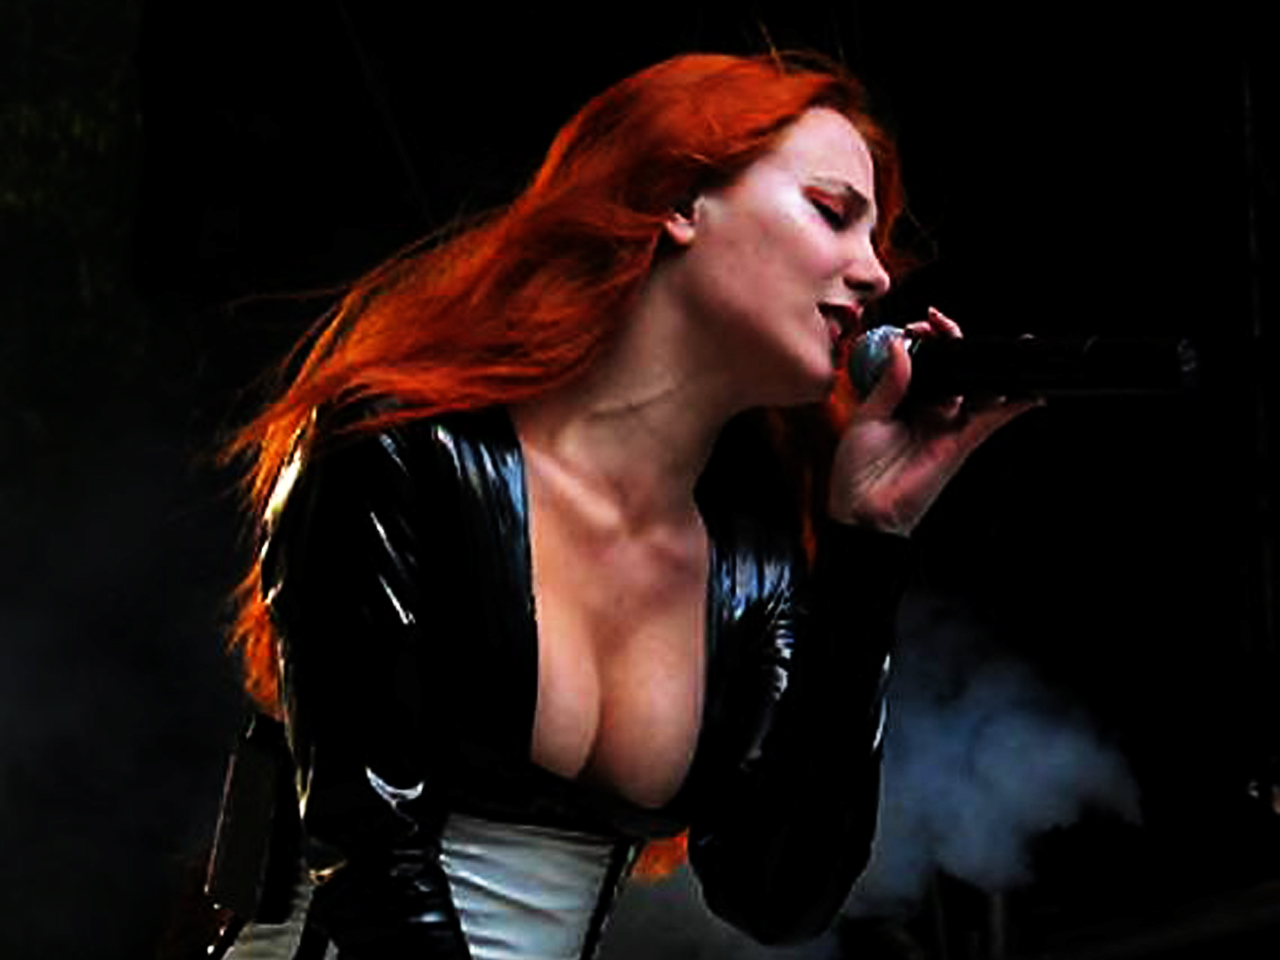 simone simons ladies sexy - photo #4